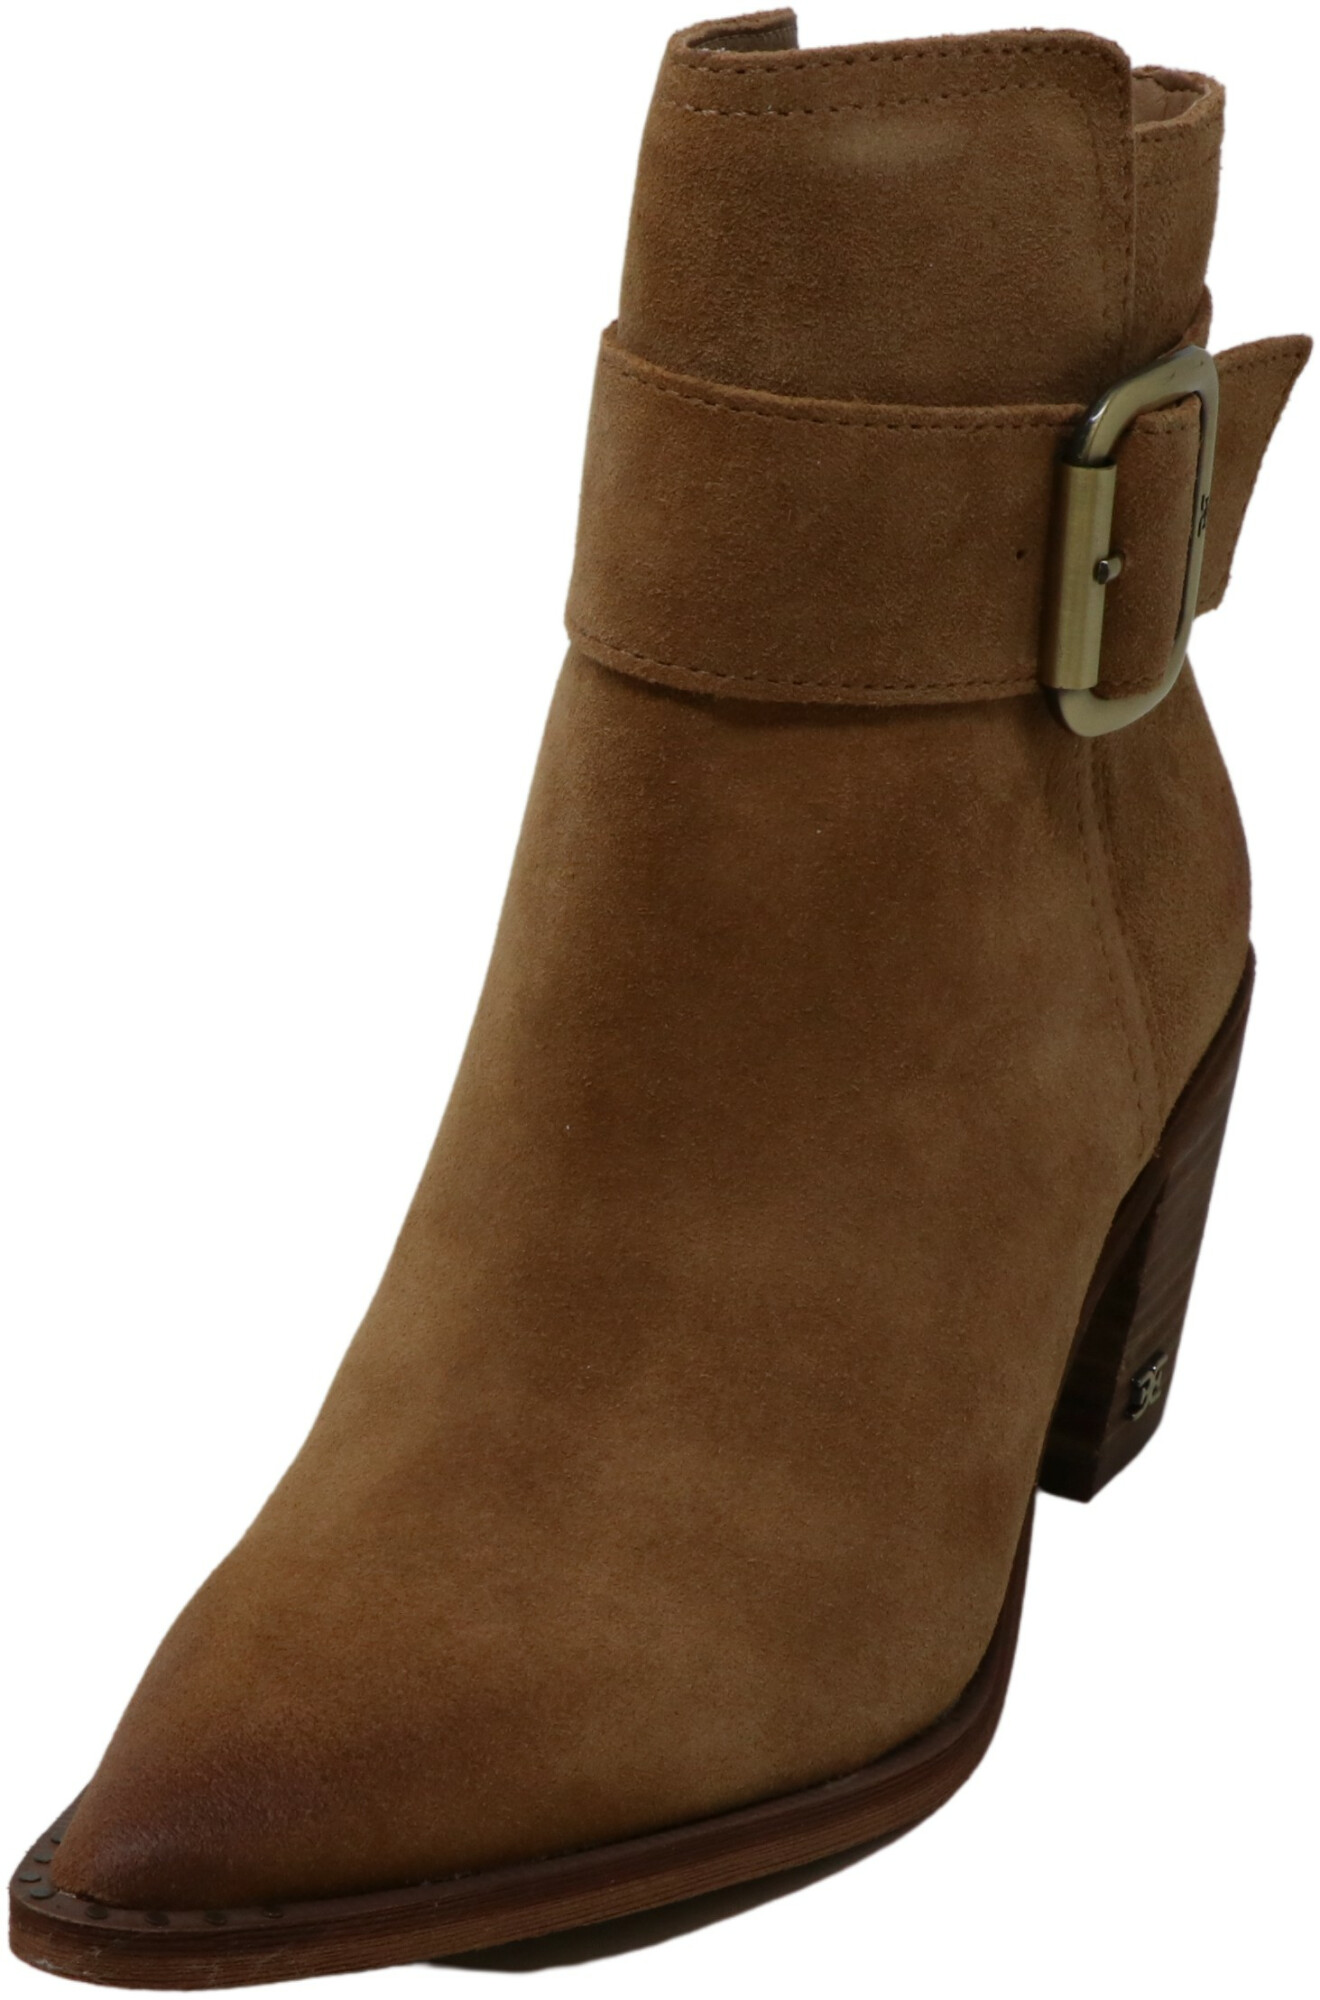 Sam Edelman Women's Leonia Suede Camel Ankle-High Leather Boot - 5M